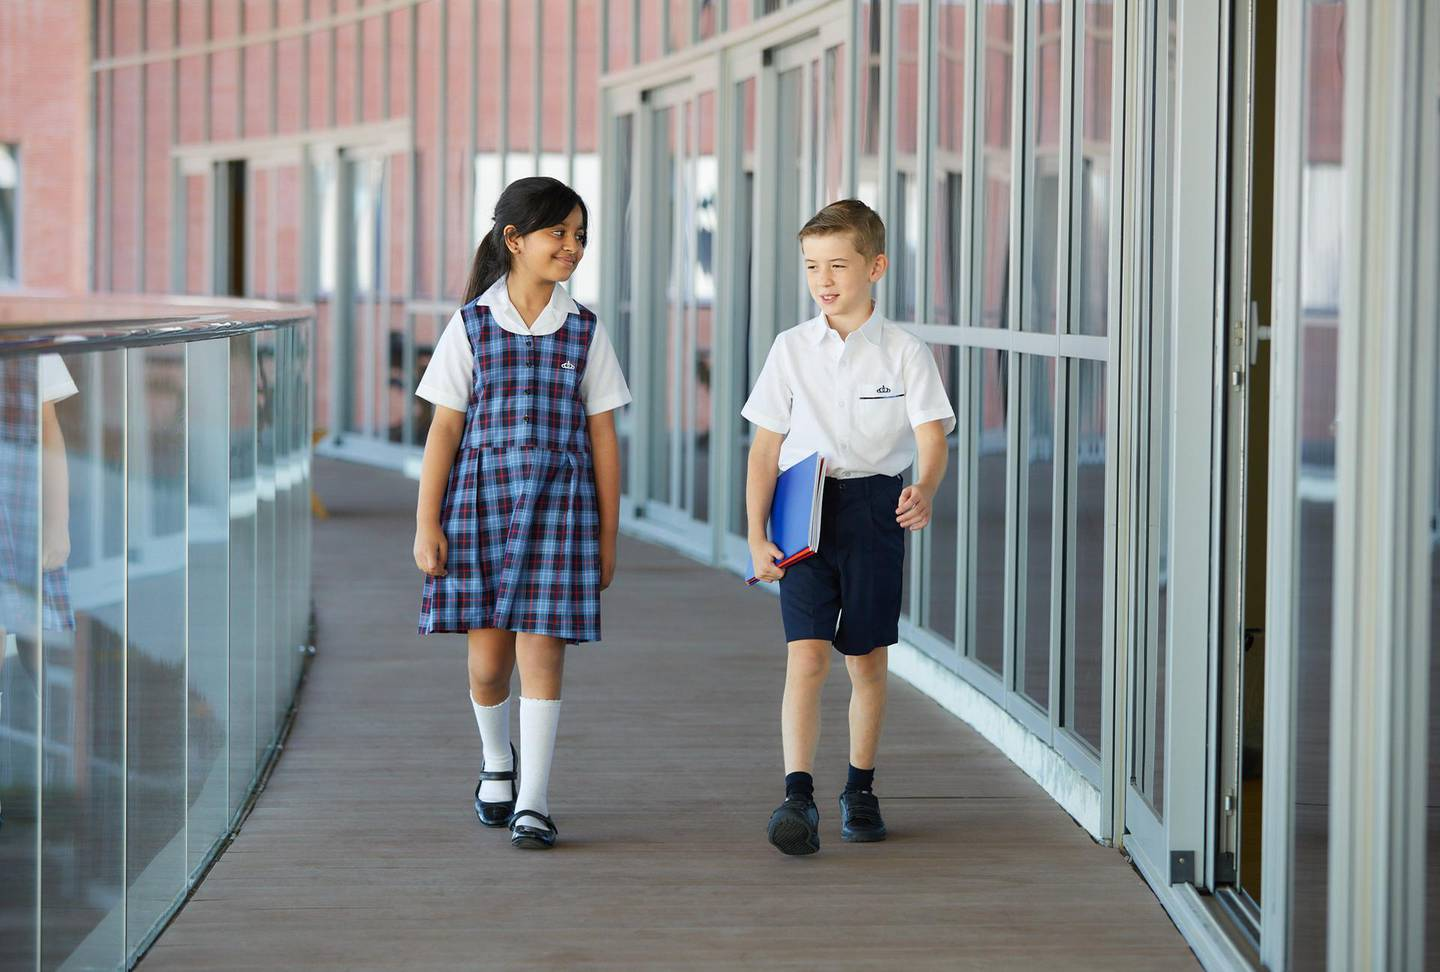 Kings' Education is delighted to announce the opening of 'Windsor School'. Courtesy Kings' Education